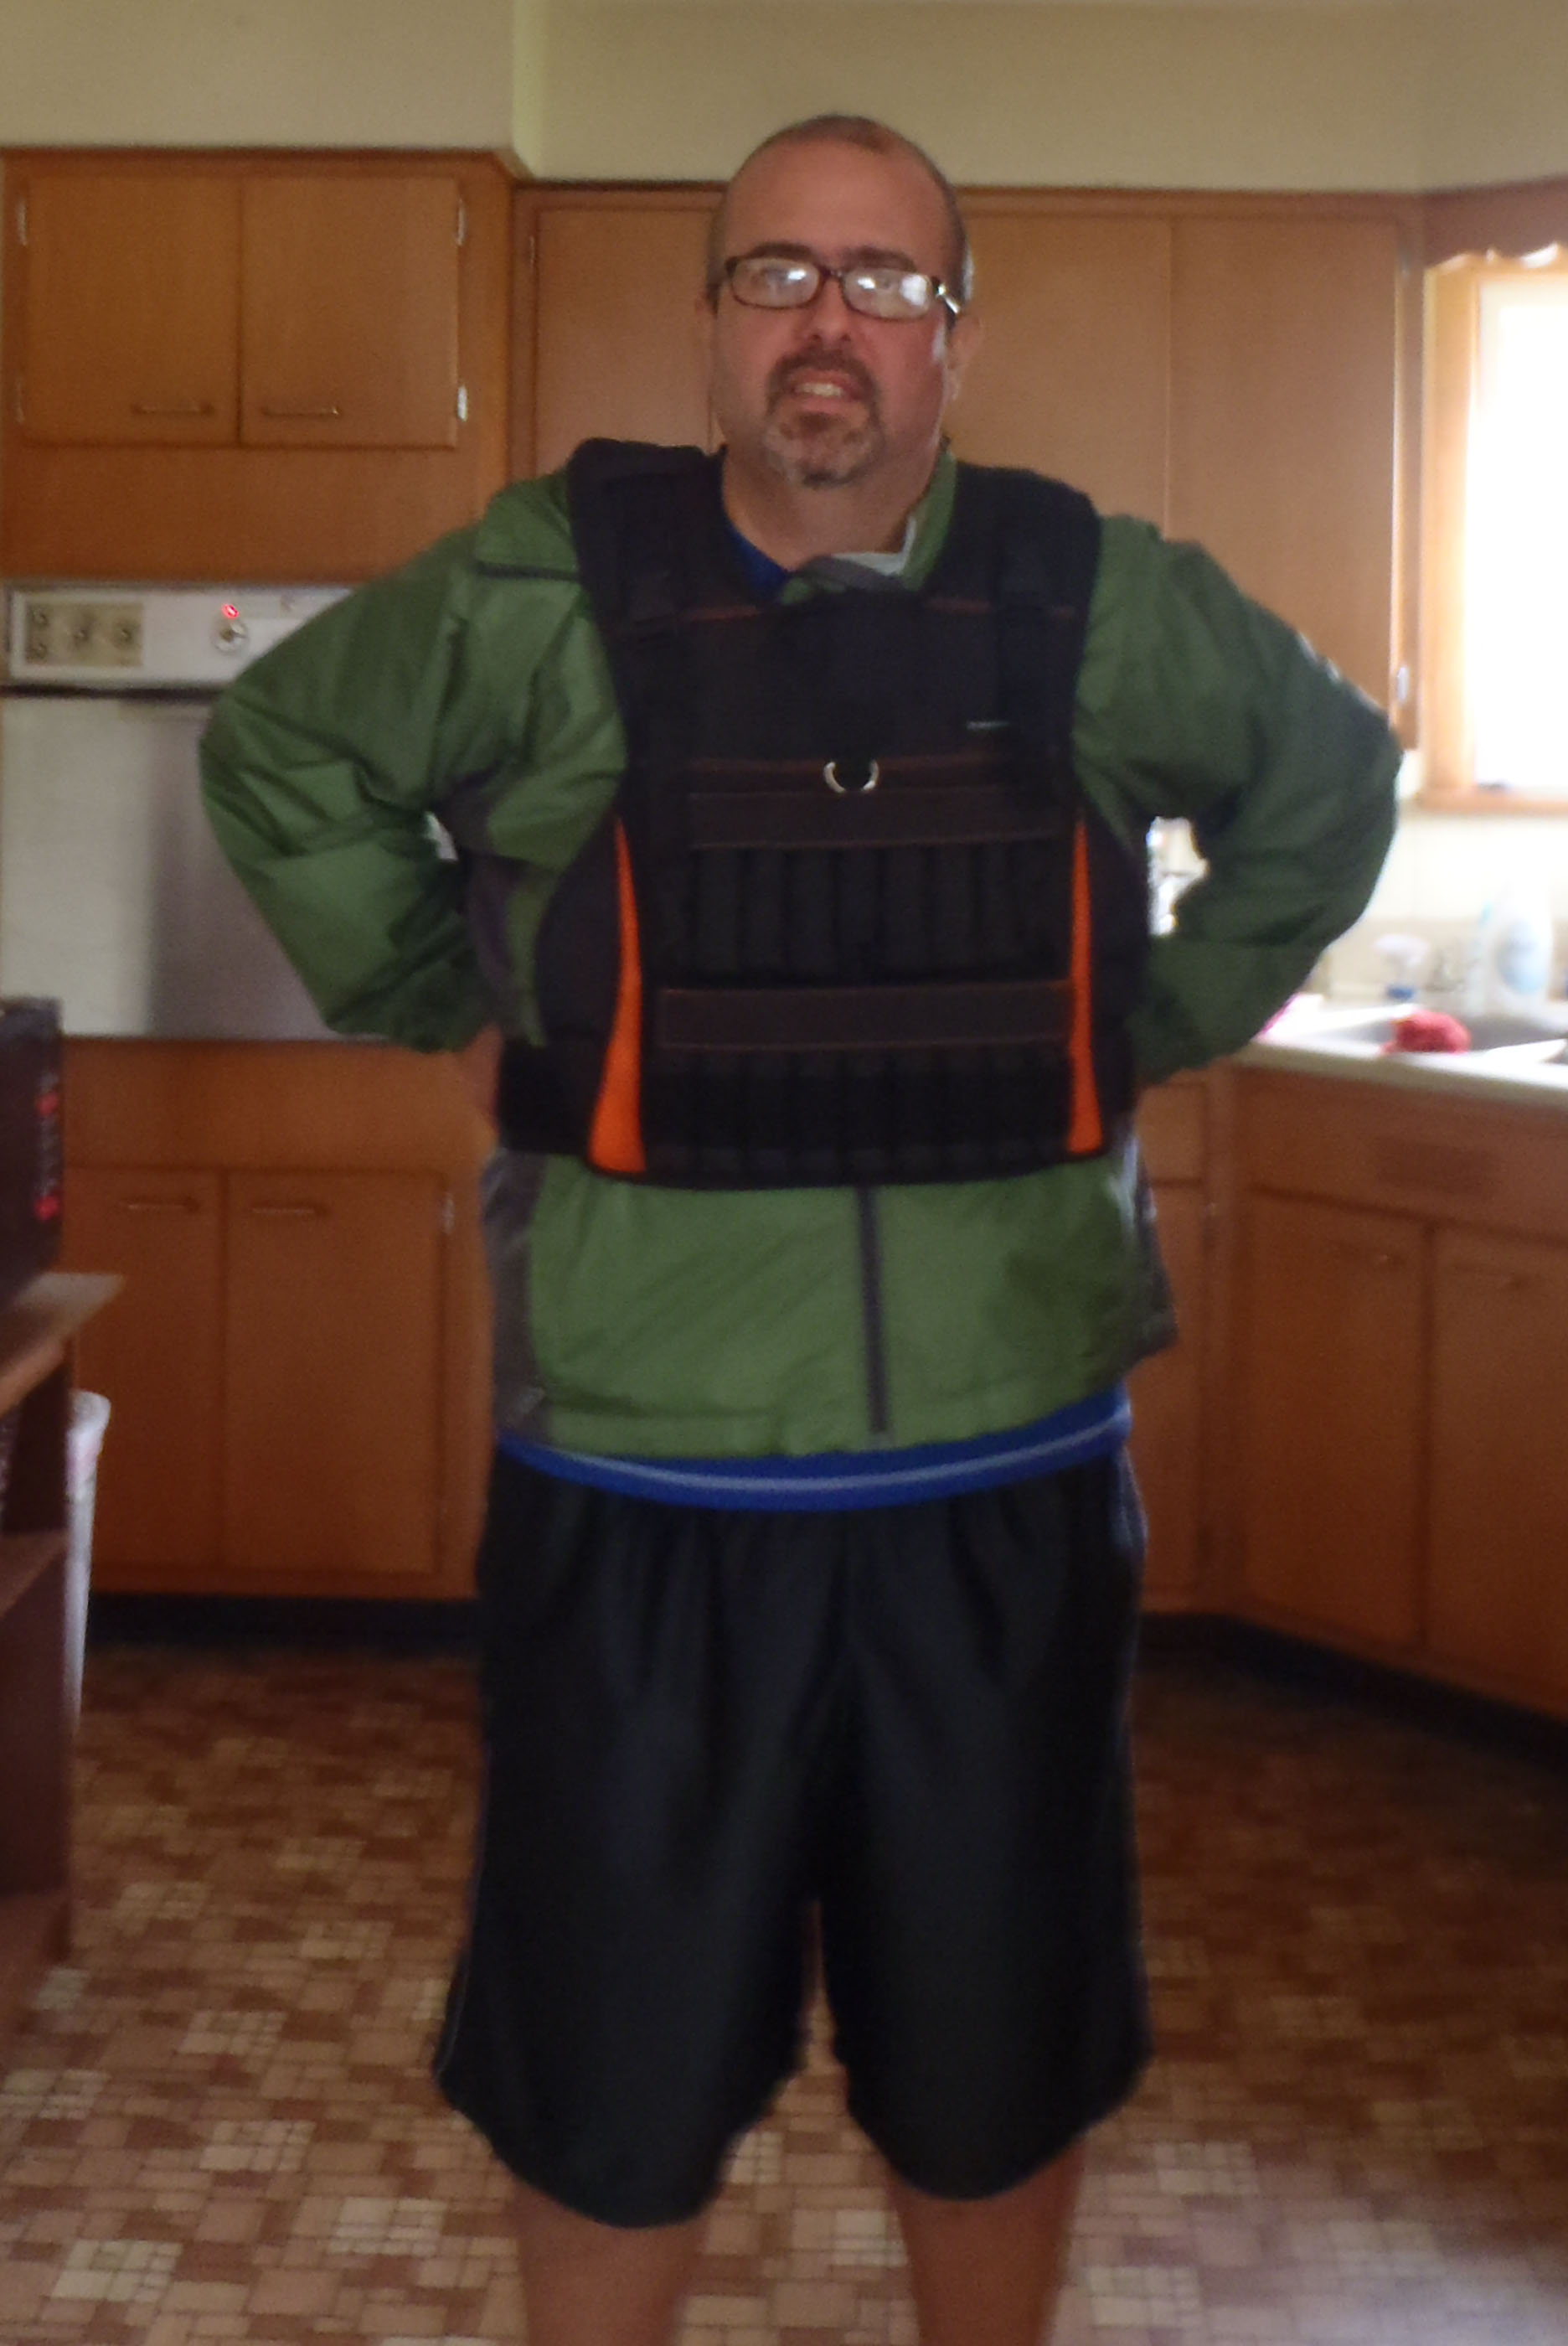 Dicks sporting goods weight vest are going